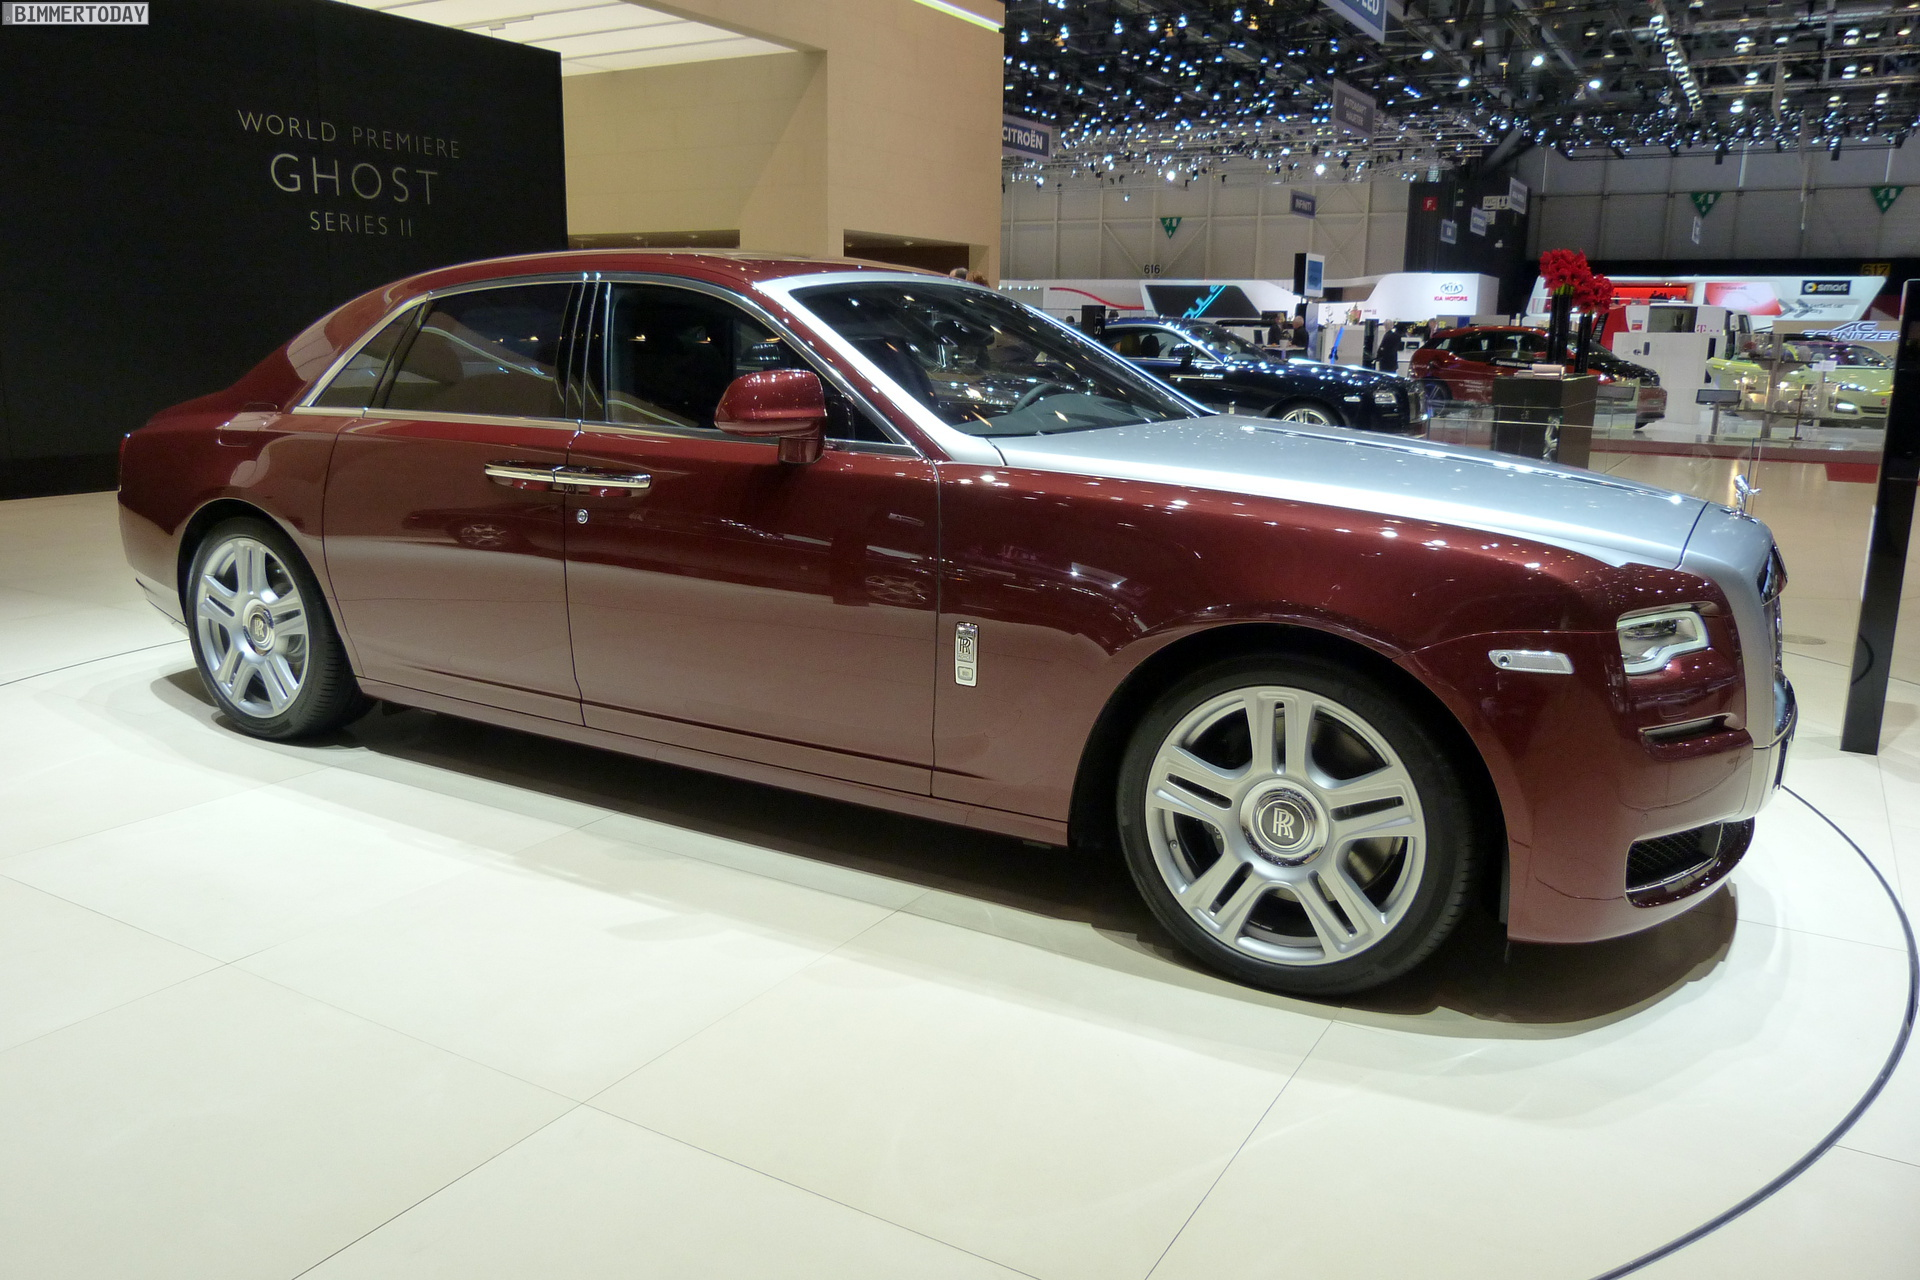 Rolls royce Ghost Series Ii #19